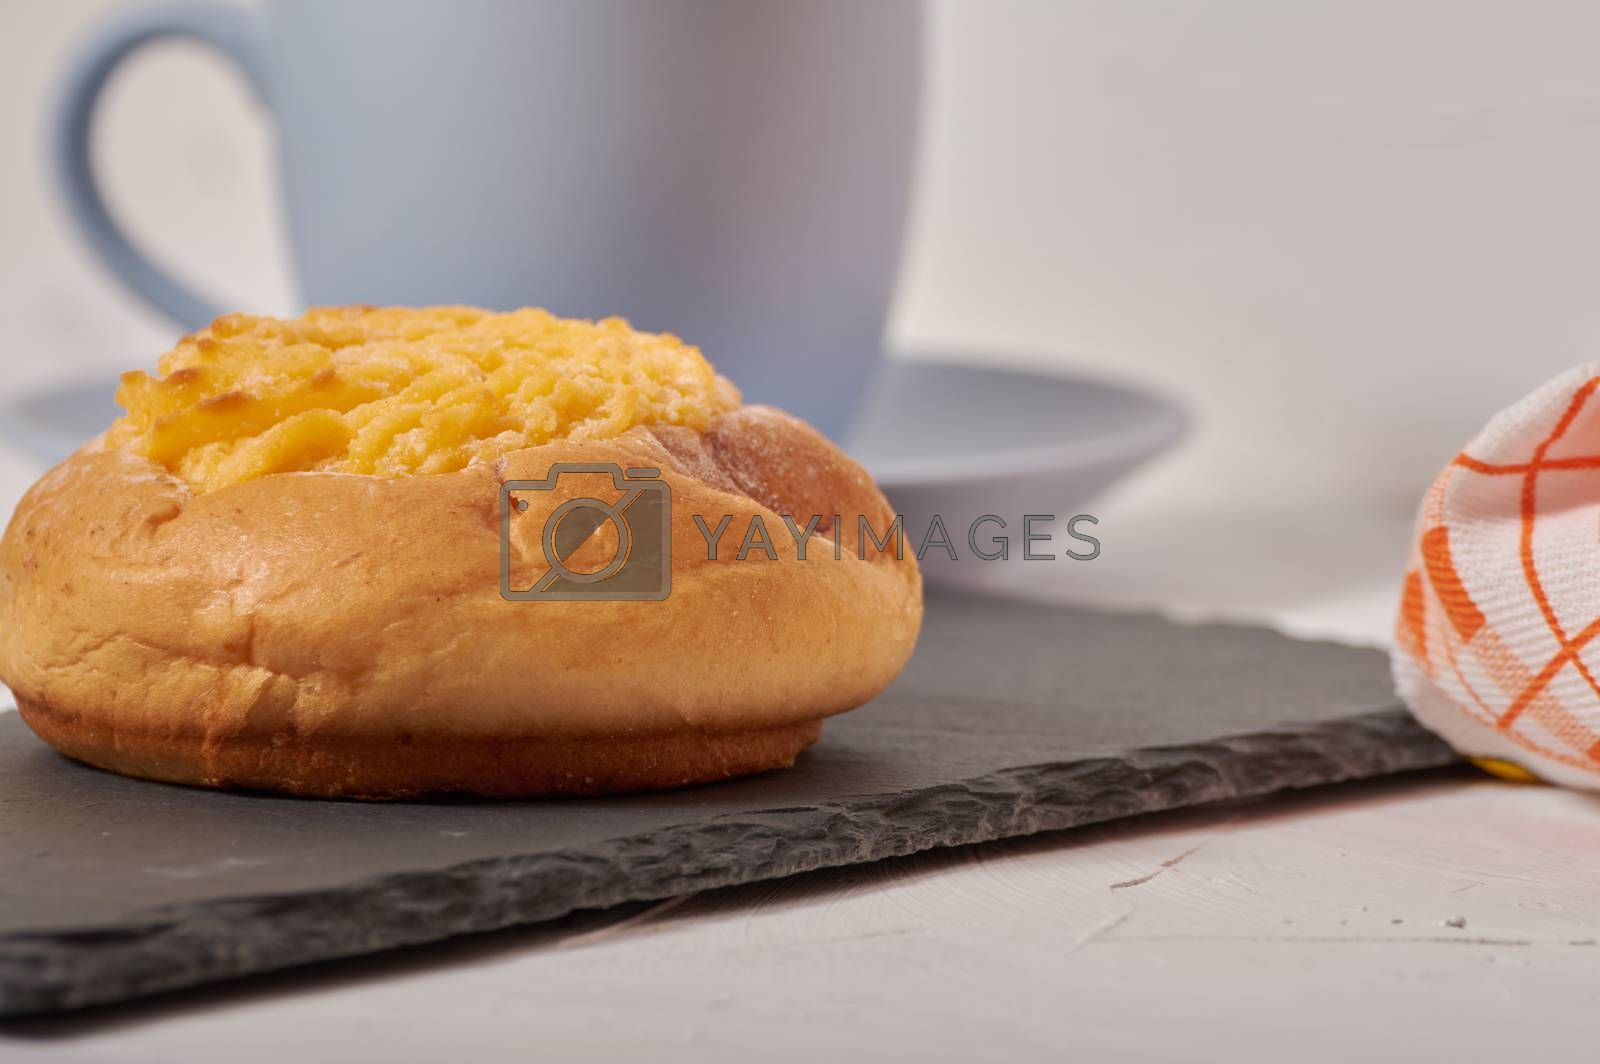 Royalty free image of coconut cream bun by Prf_photo